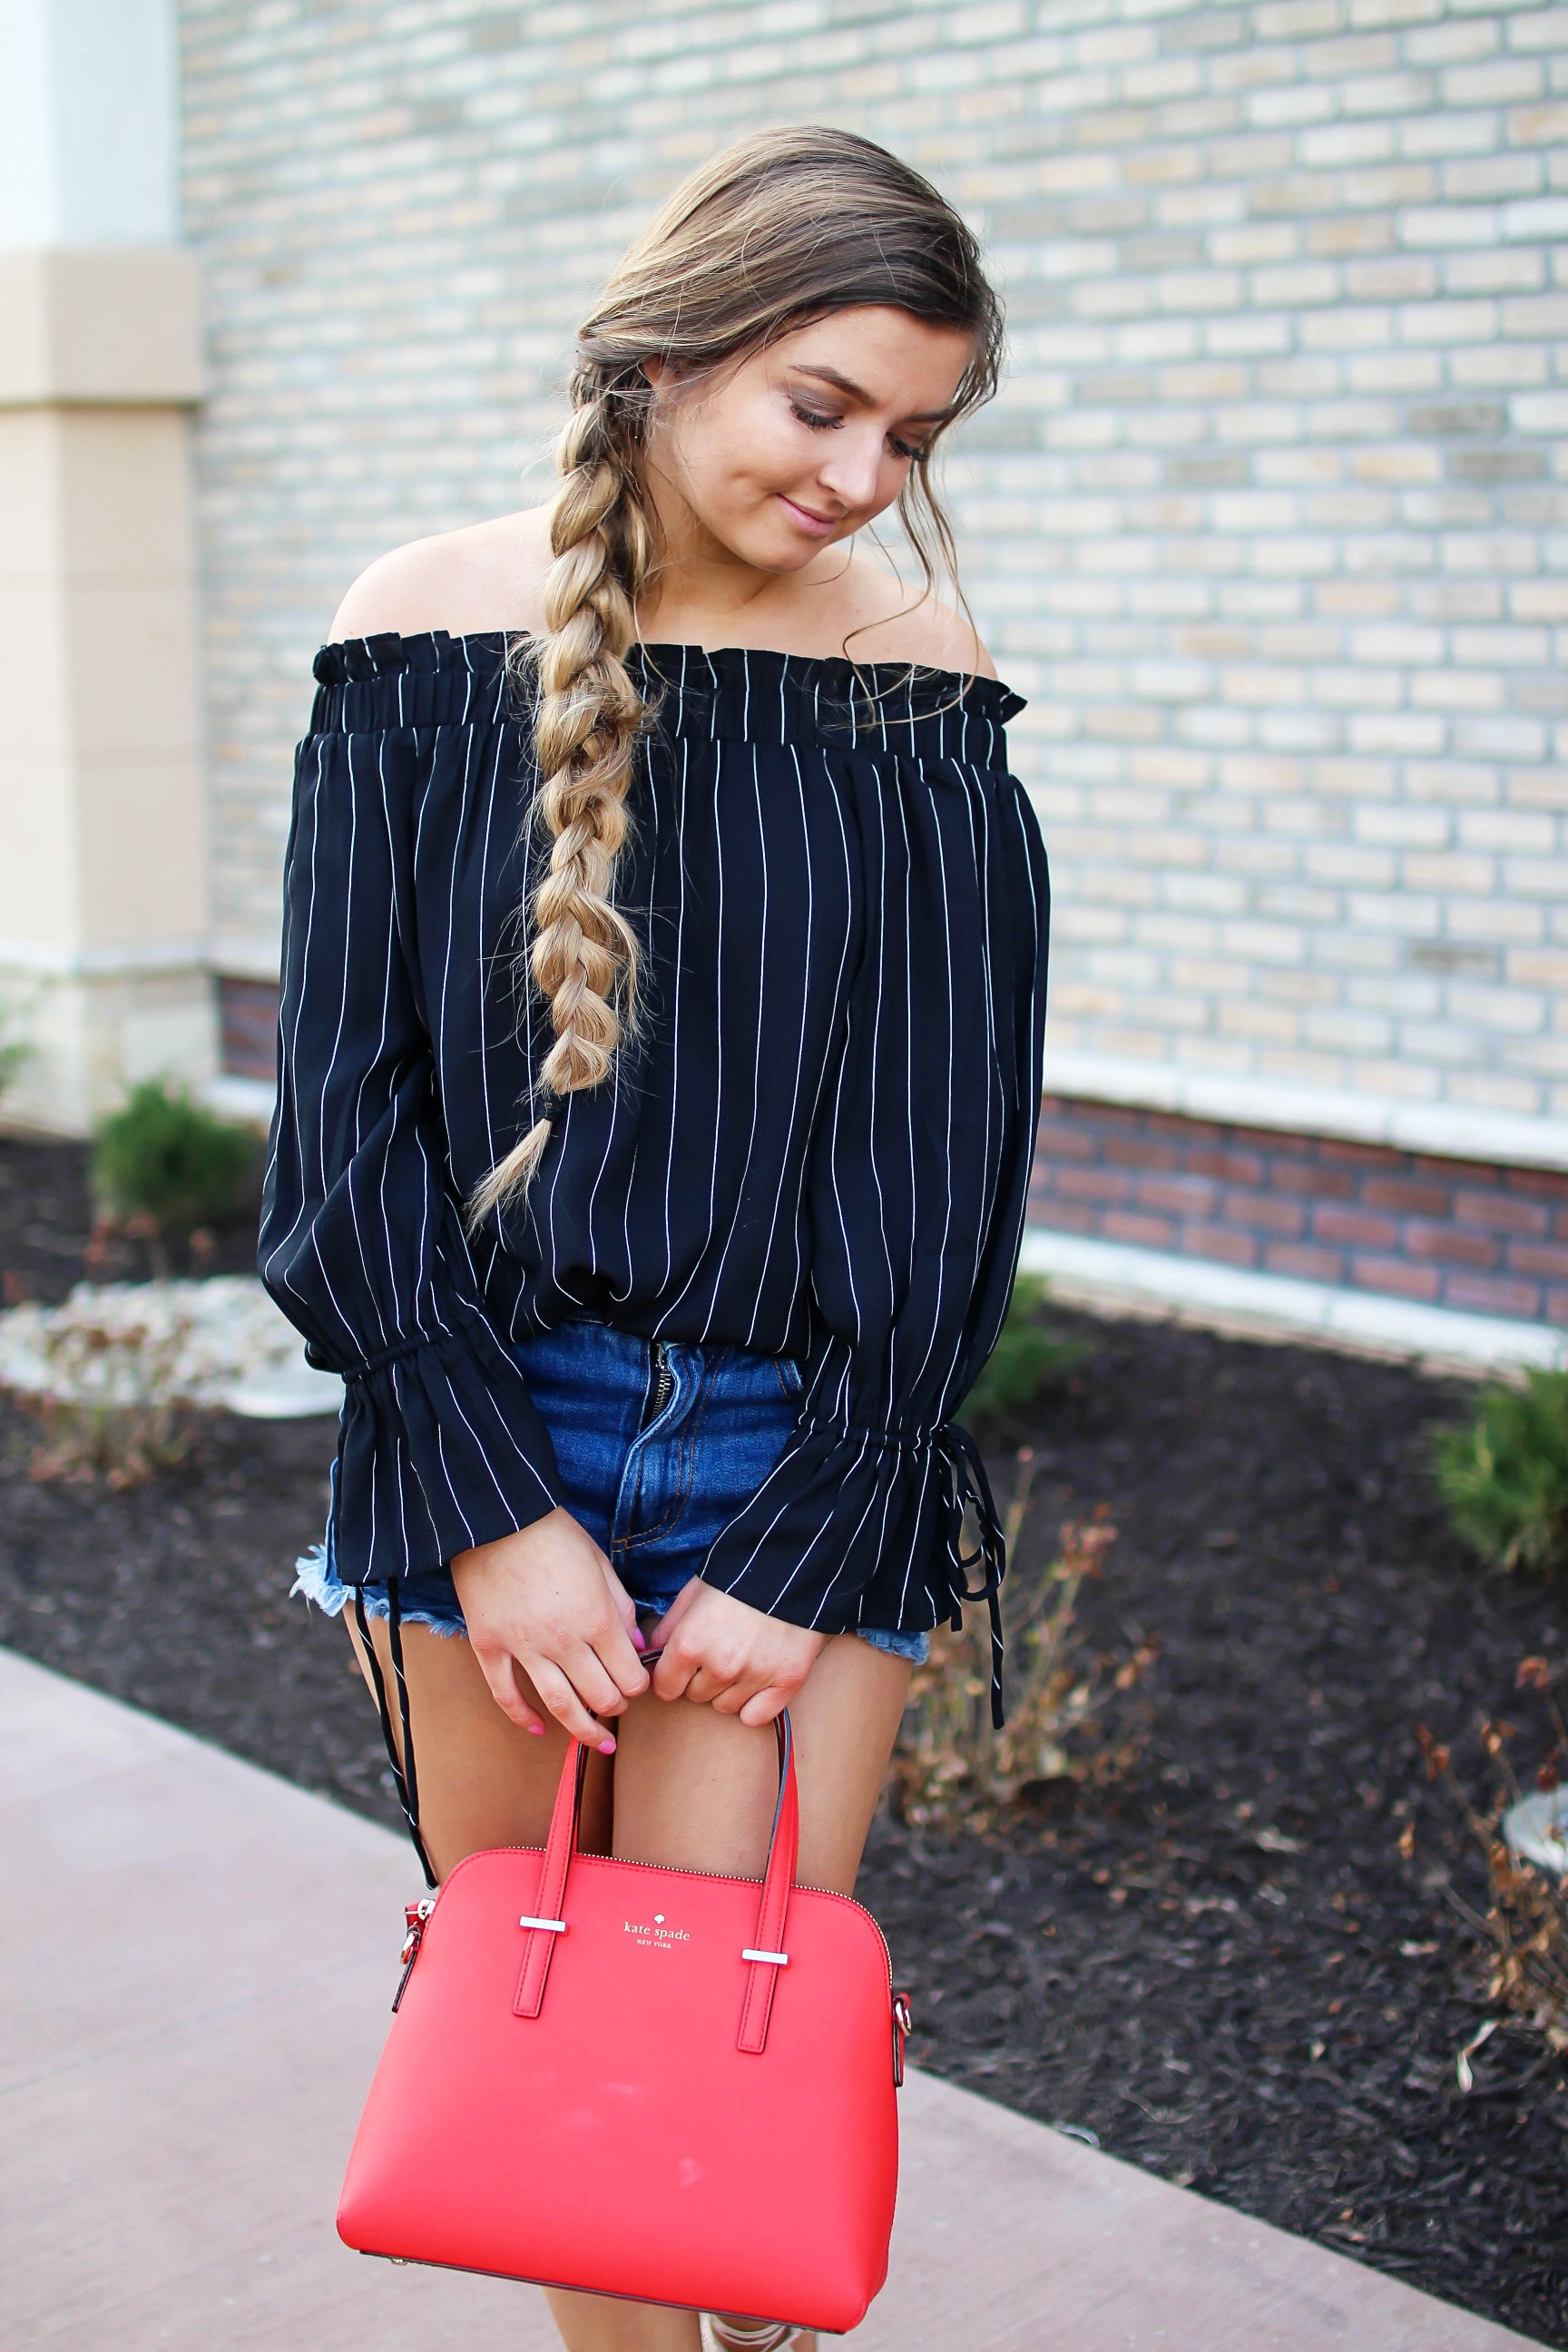 The cutest black striped off the shoulder top paired with jean shorts and a red Kate Spade purse. My favorite tassel shoes go perfectly with this look! I finished off the look with my long hair in a side braid. I love this outfit idea! By Lauren Lindmark on daily dose of charm dailydoseofcharm.com